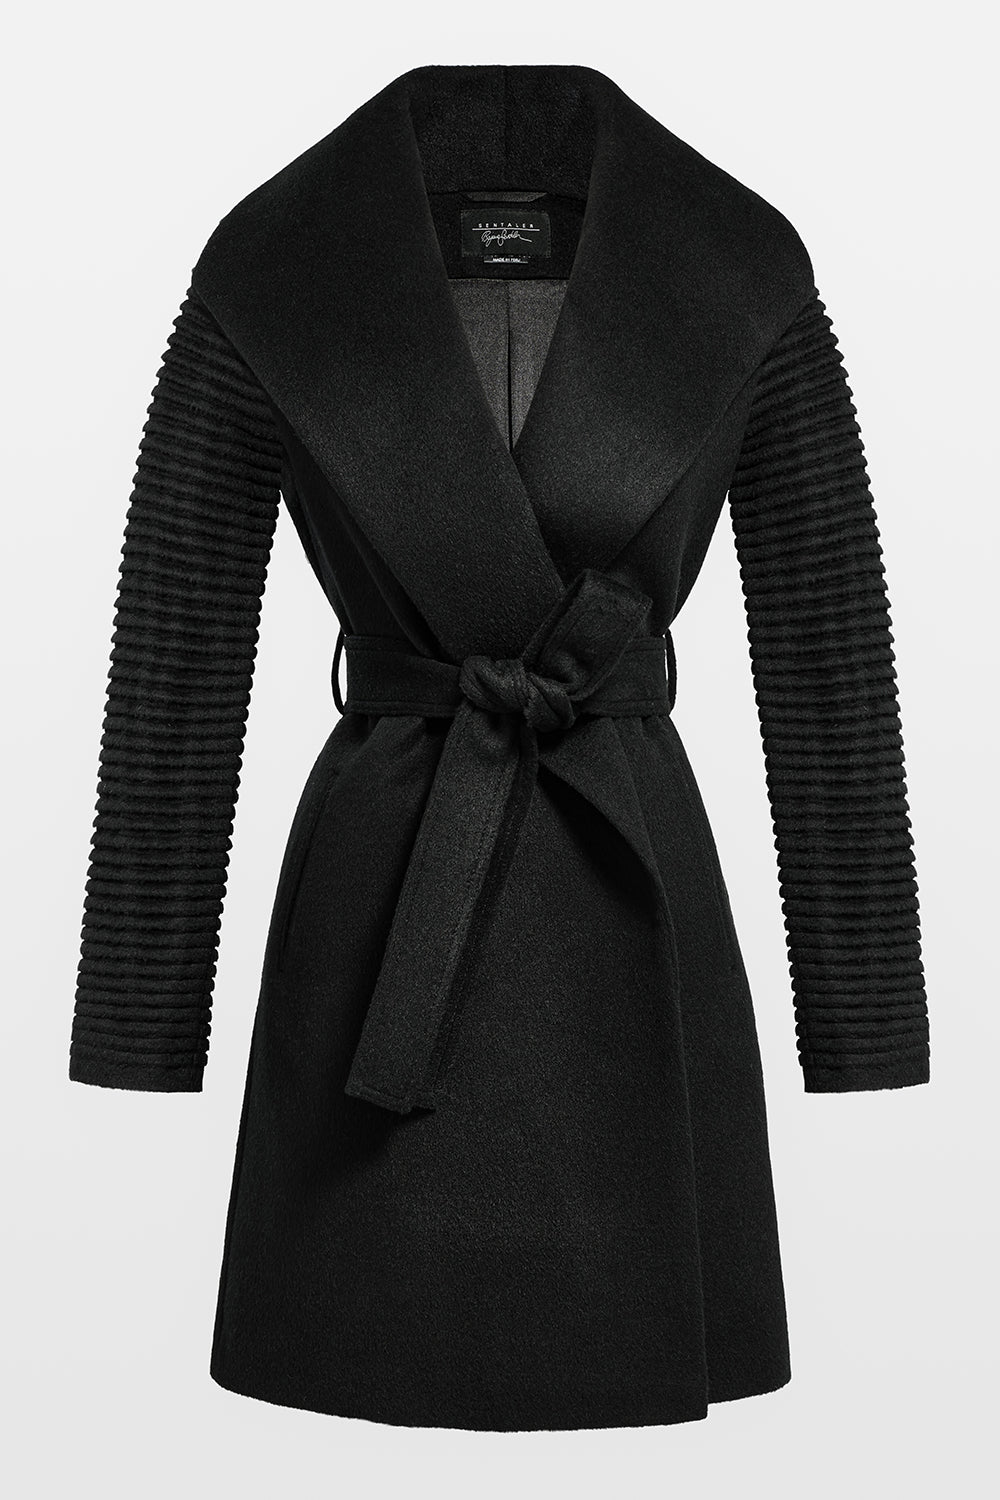 Sentaler Mid Length Shawl Collar Wrap Coat with Ribbed Sleeves featured in Baby Alpaca and available in Black. Seen off model.